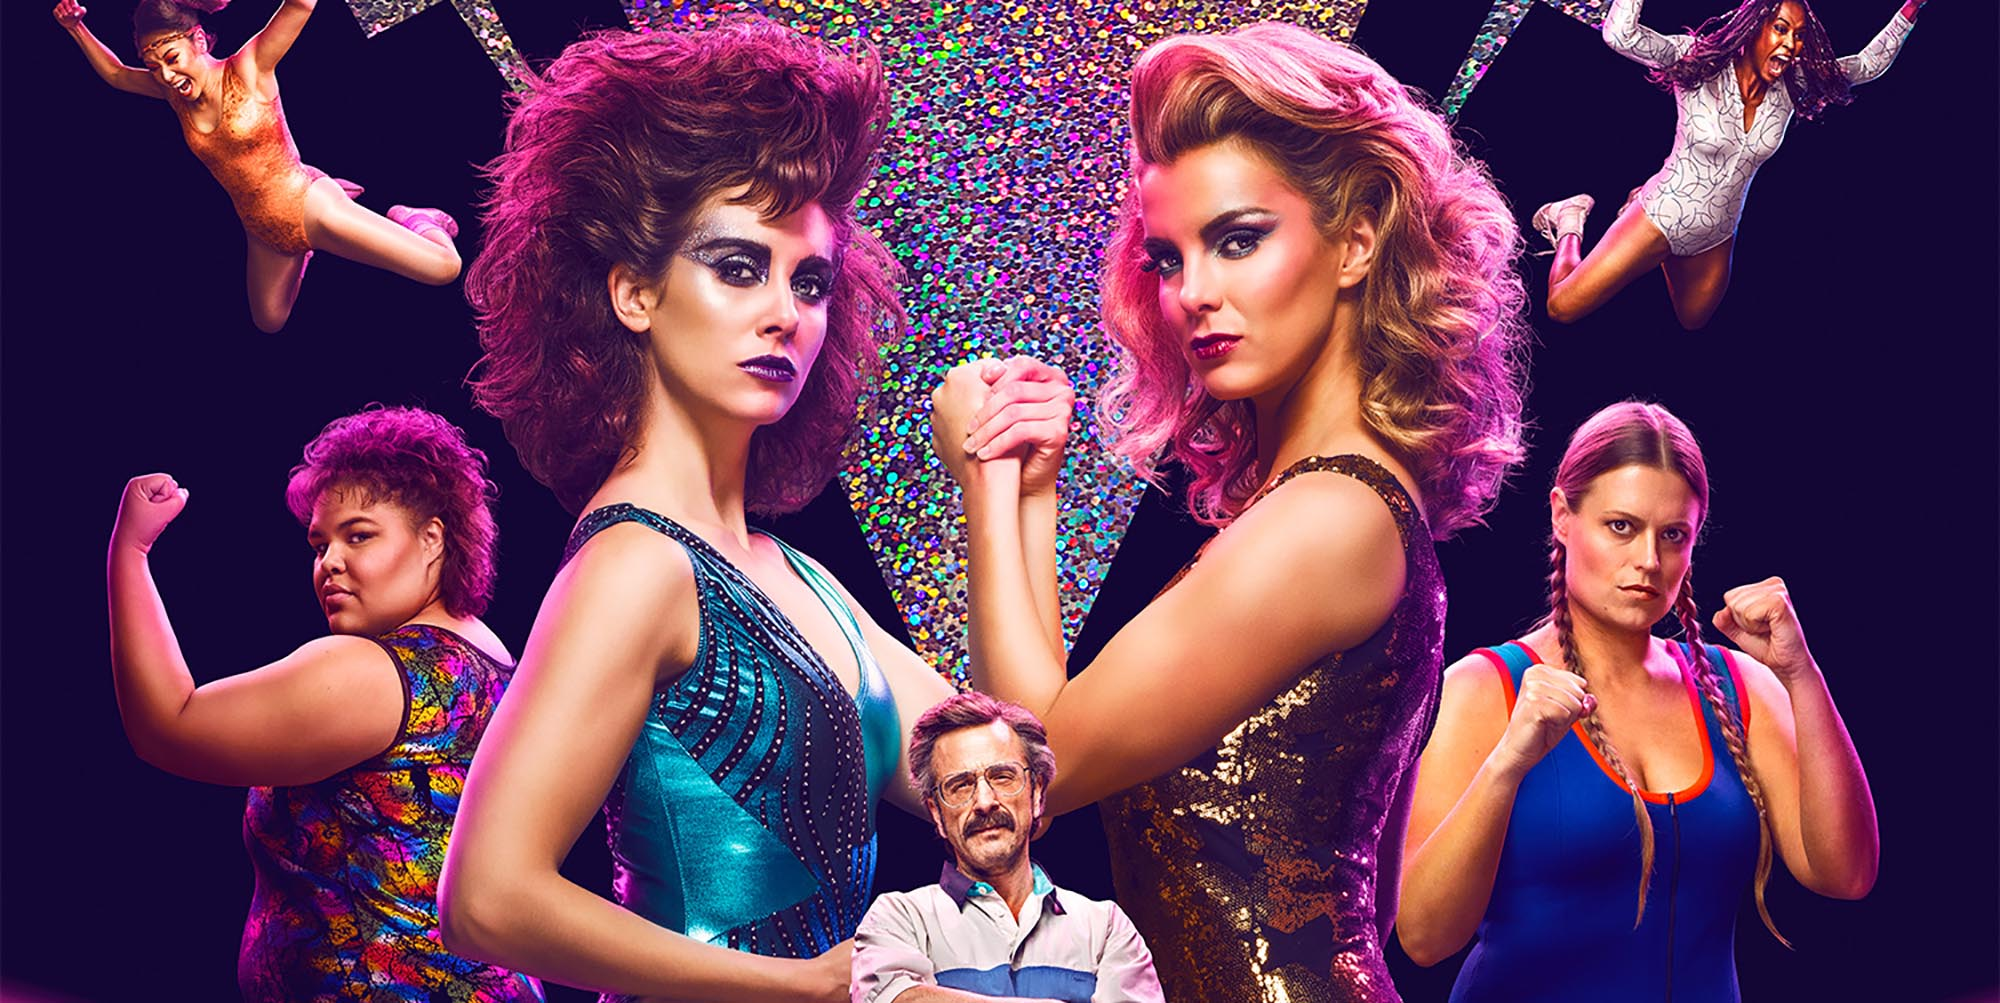 S2 of 'GLOW' has finally landed on Netflix. To ensure that you can become a Gorgeous Lady of Wrestling while bingewatching the new season, here's our guide on how to dress like a 'GLOW' superstar.